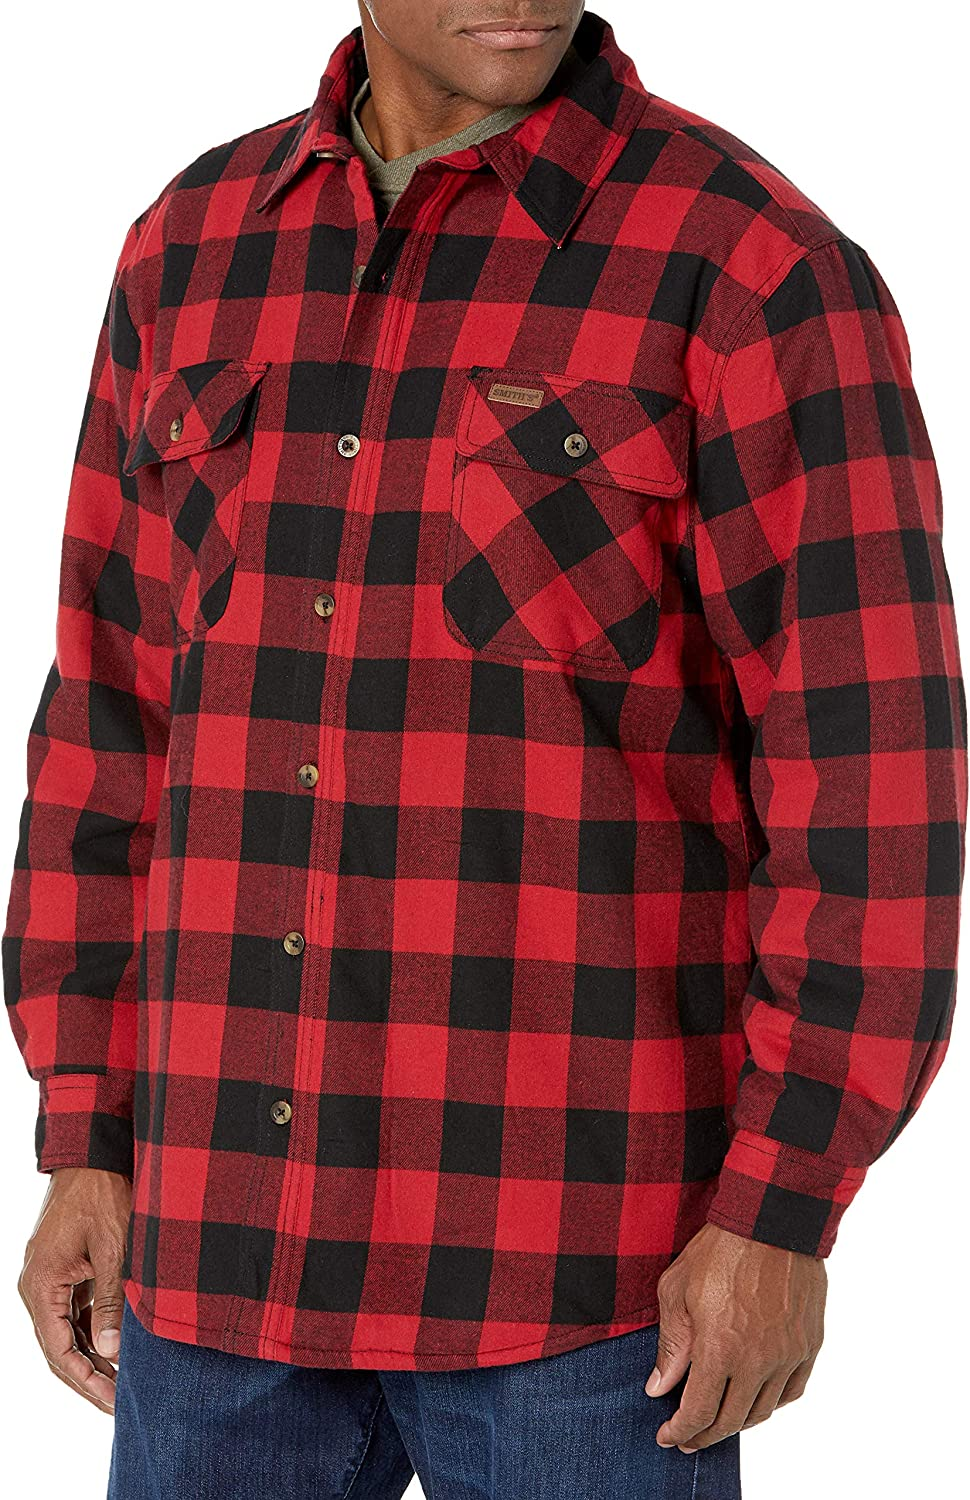 Smith's Workwear mens Sherpa Lined Flannel Shirt Jacket